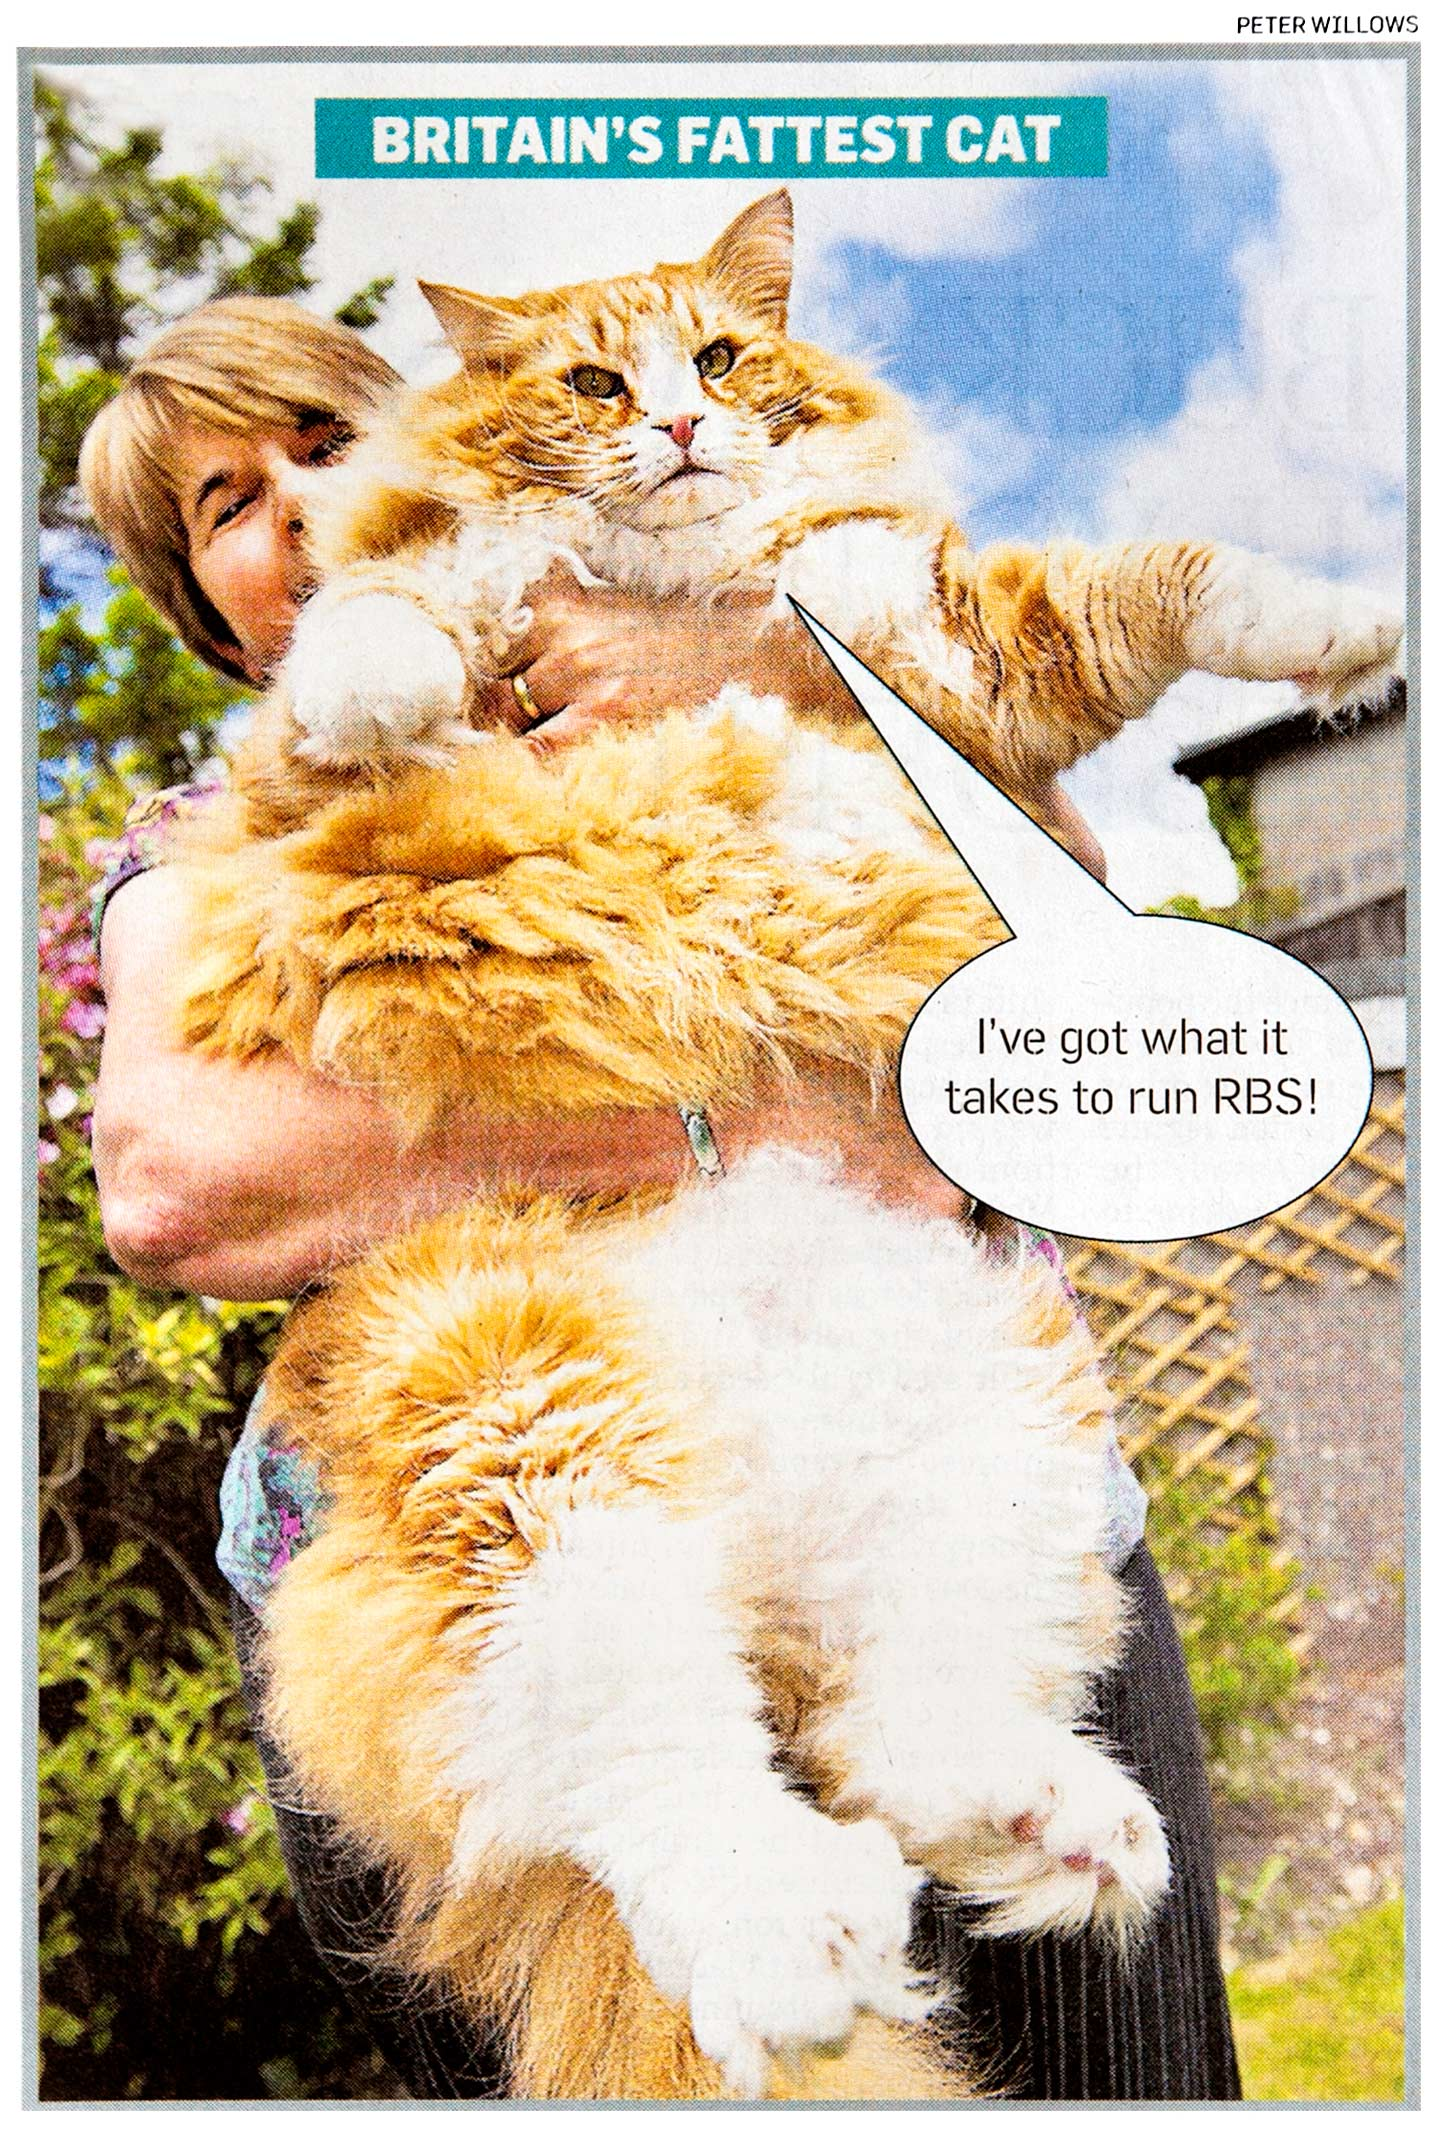 Peter Willows Photographer dorset weddings press & pr Dorset- fat-cat-ulrich-sunday-times